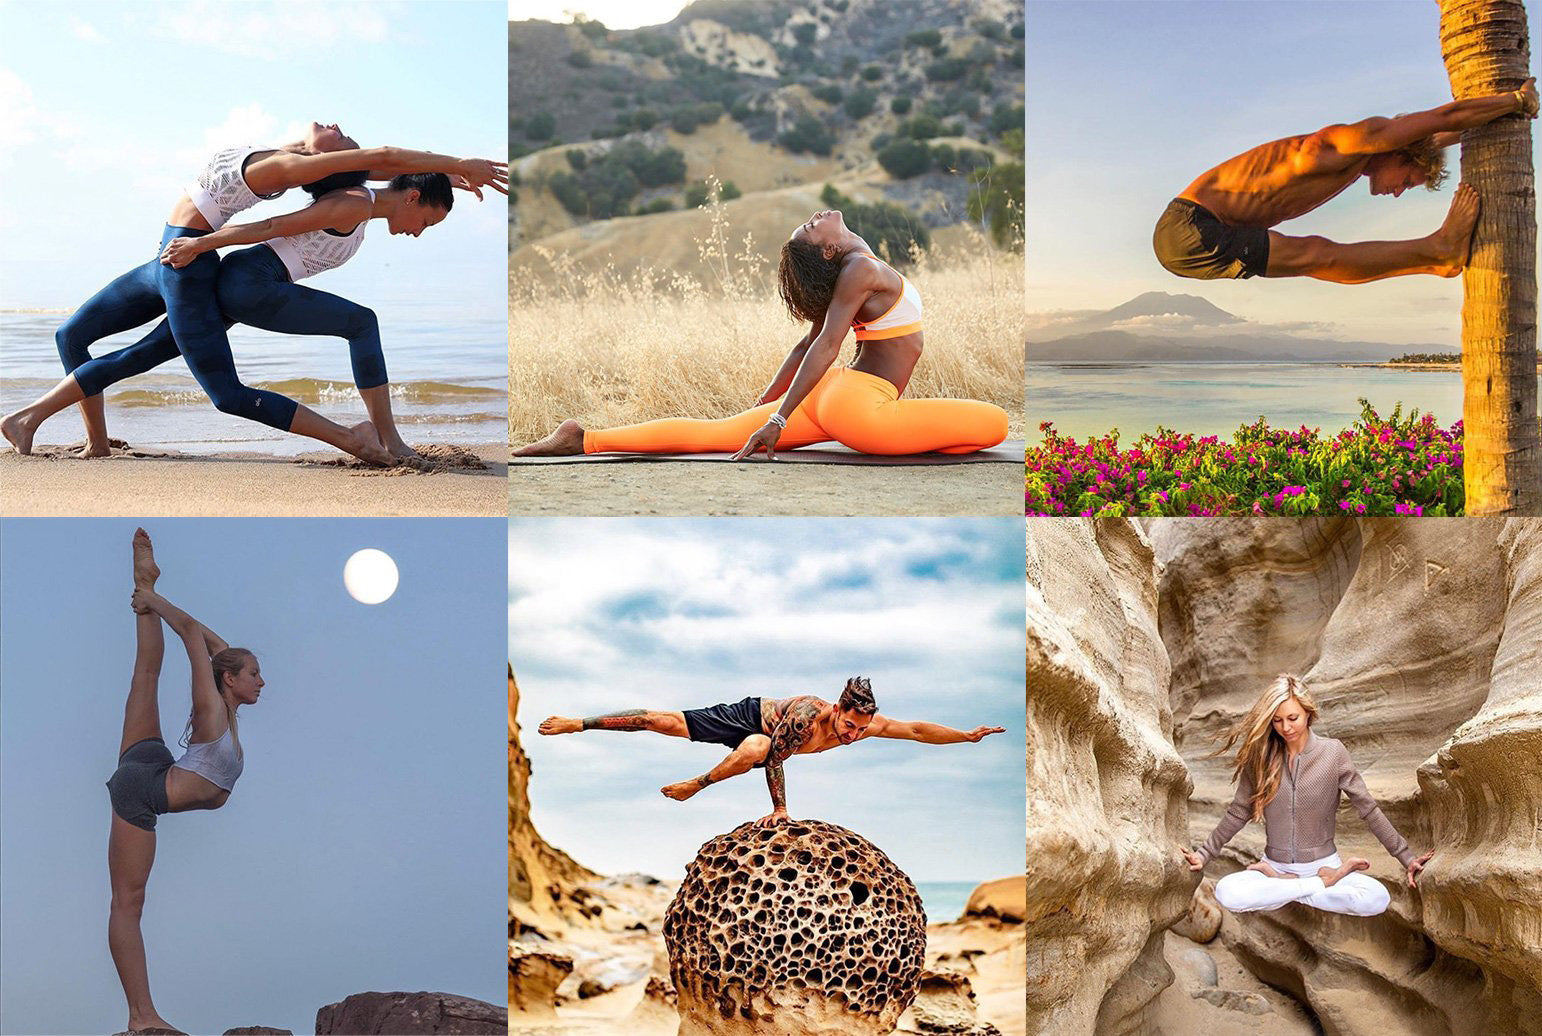 8f15f801f0 Many of the most influential yogis in the world teach yoga at Alo  headquarters (and hang out with our team) because we share a deep belief in  spreading ...